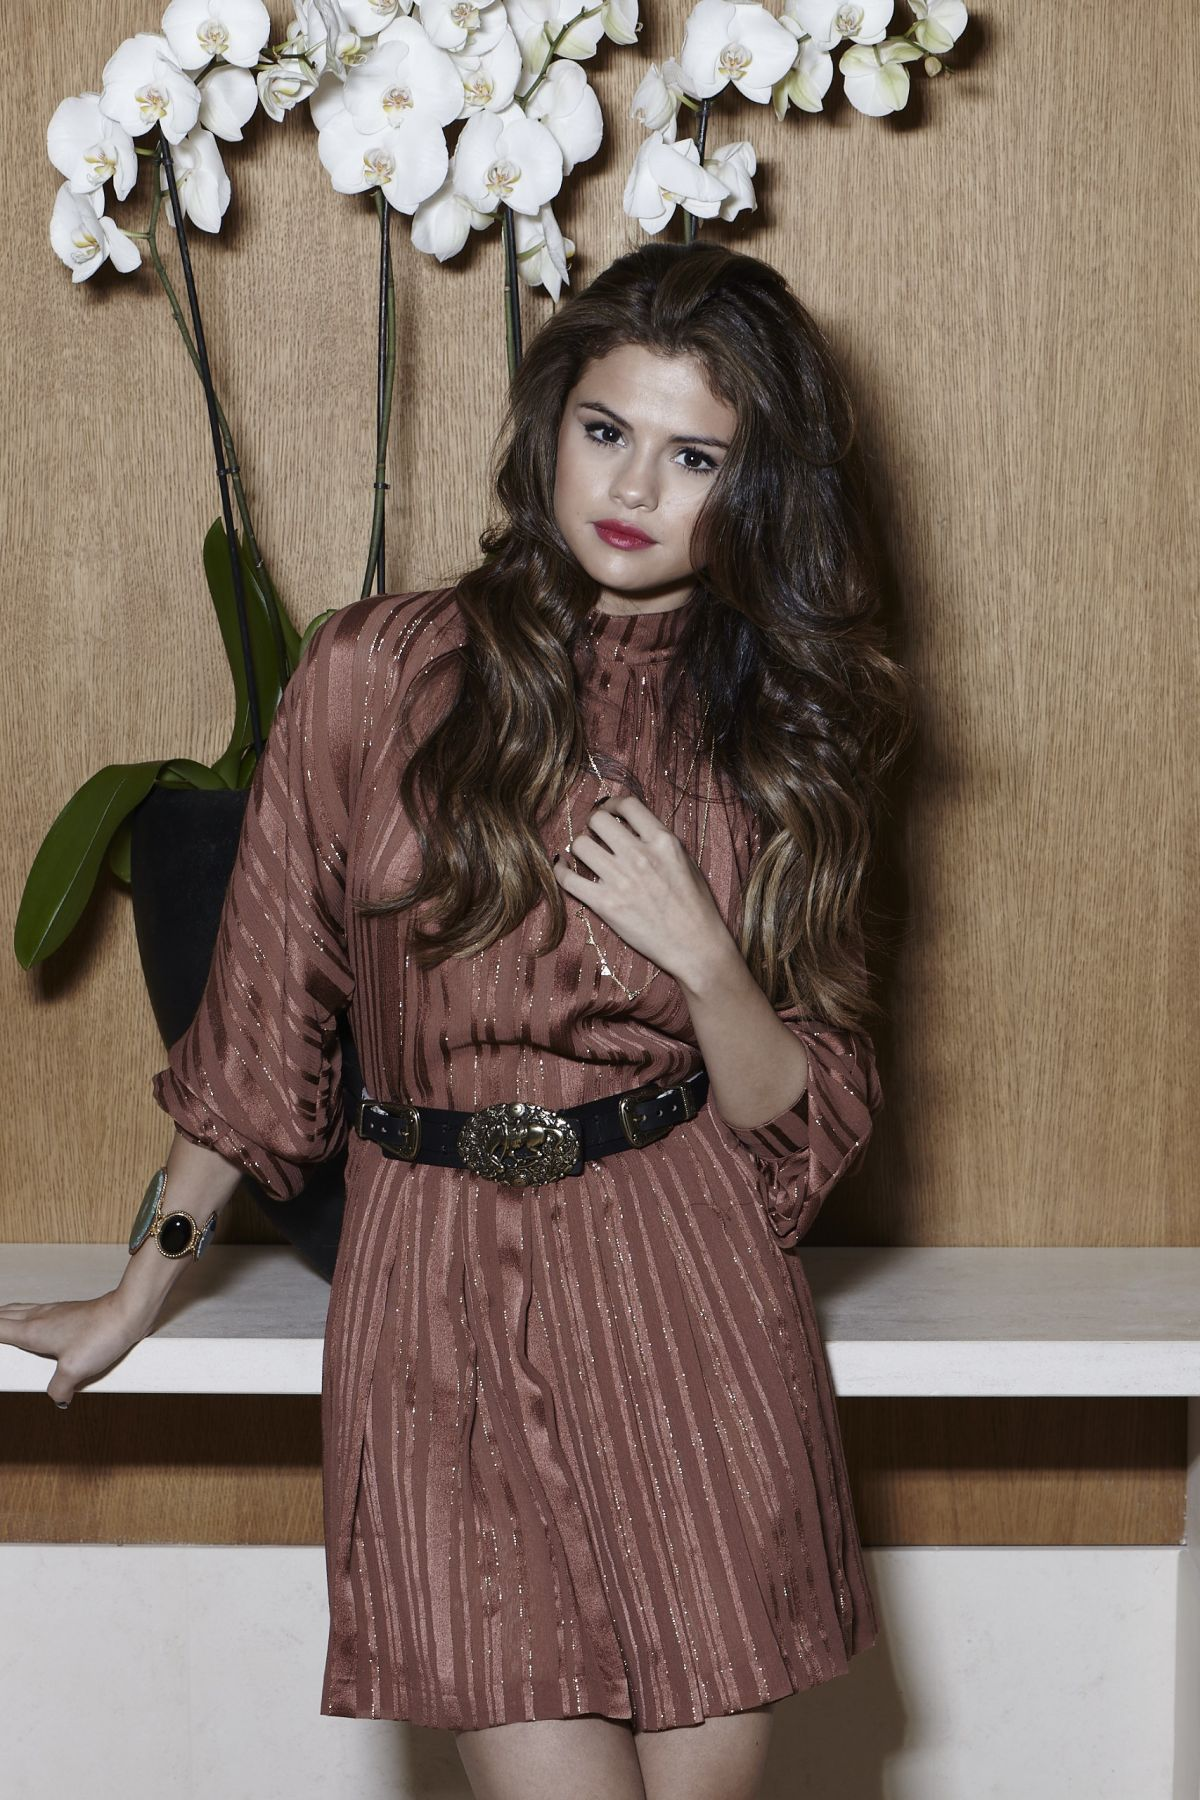 SLENA GOMEZ - selenagomez.bz Website Photoshoot